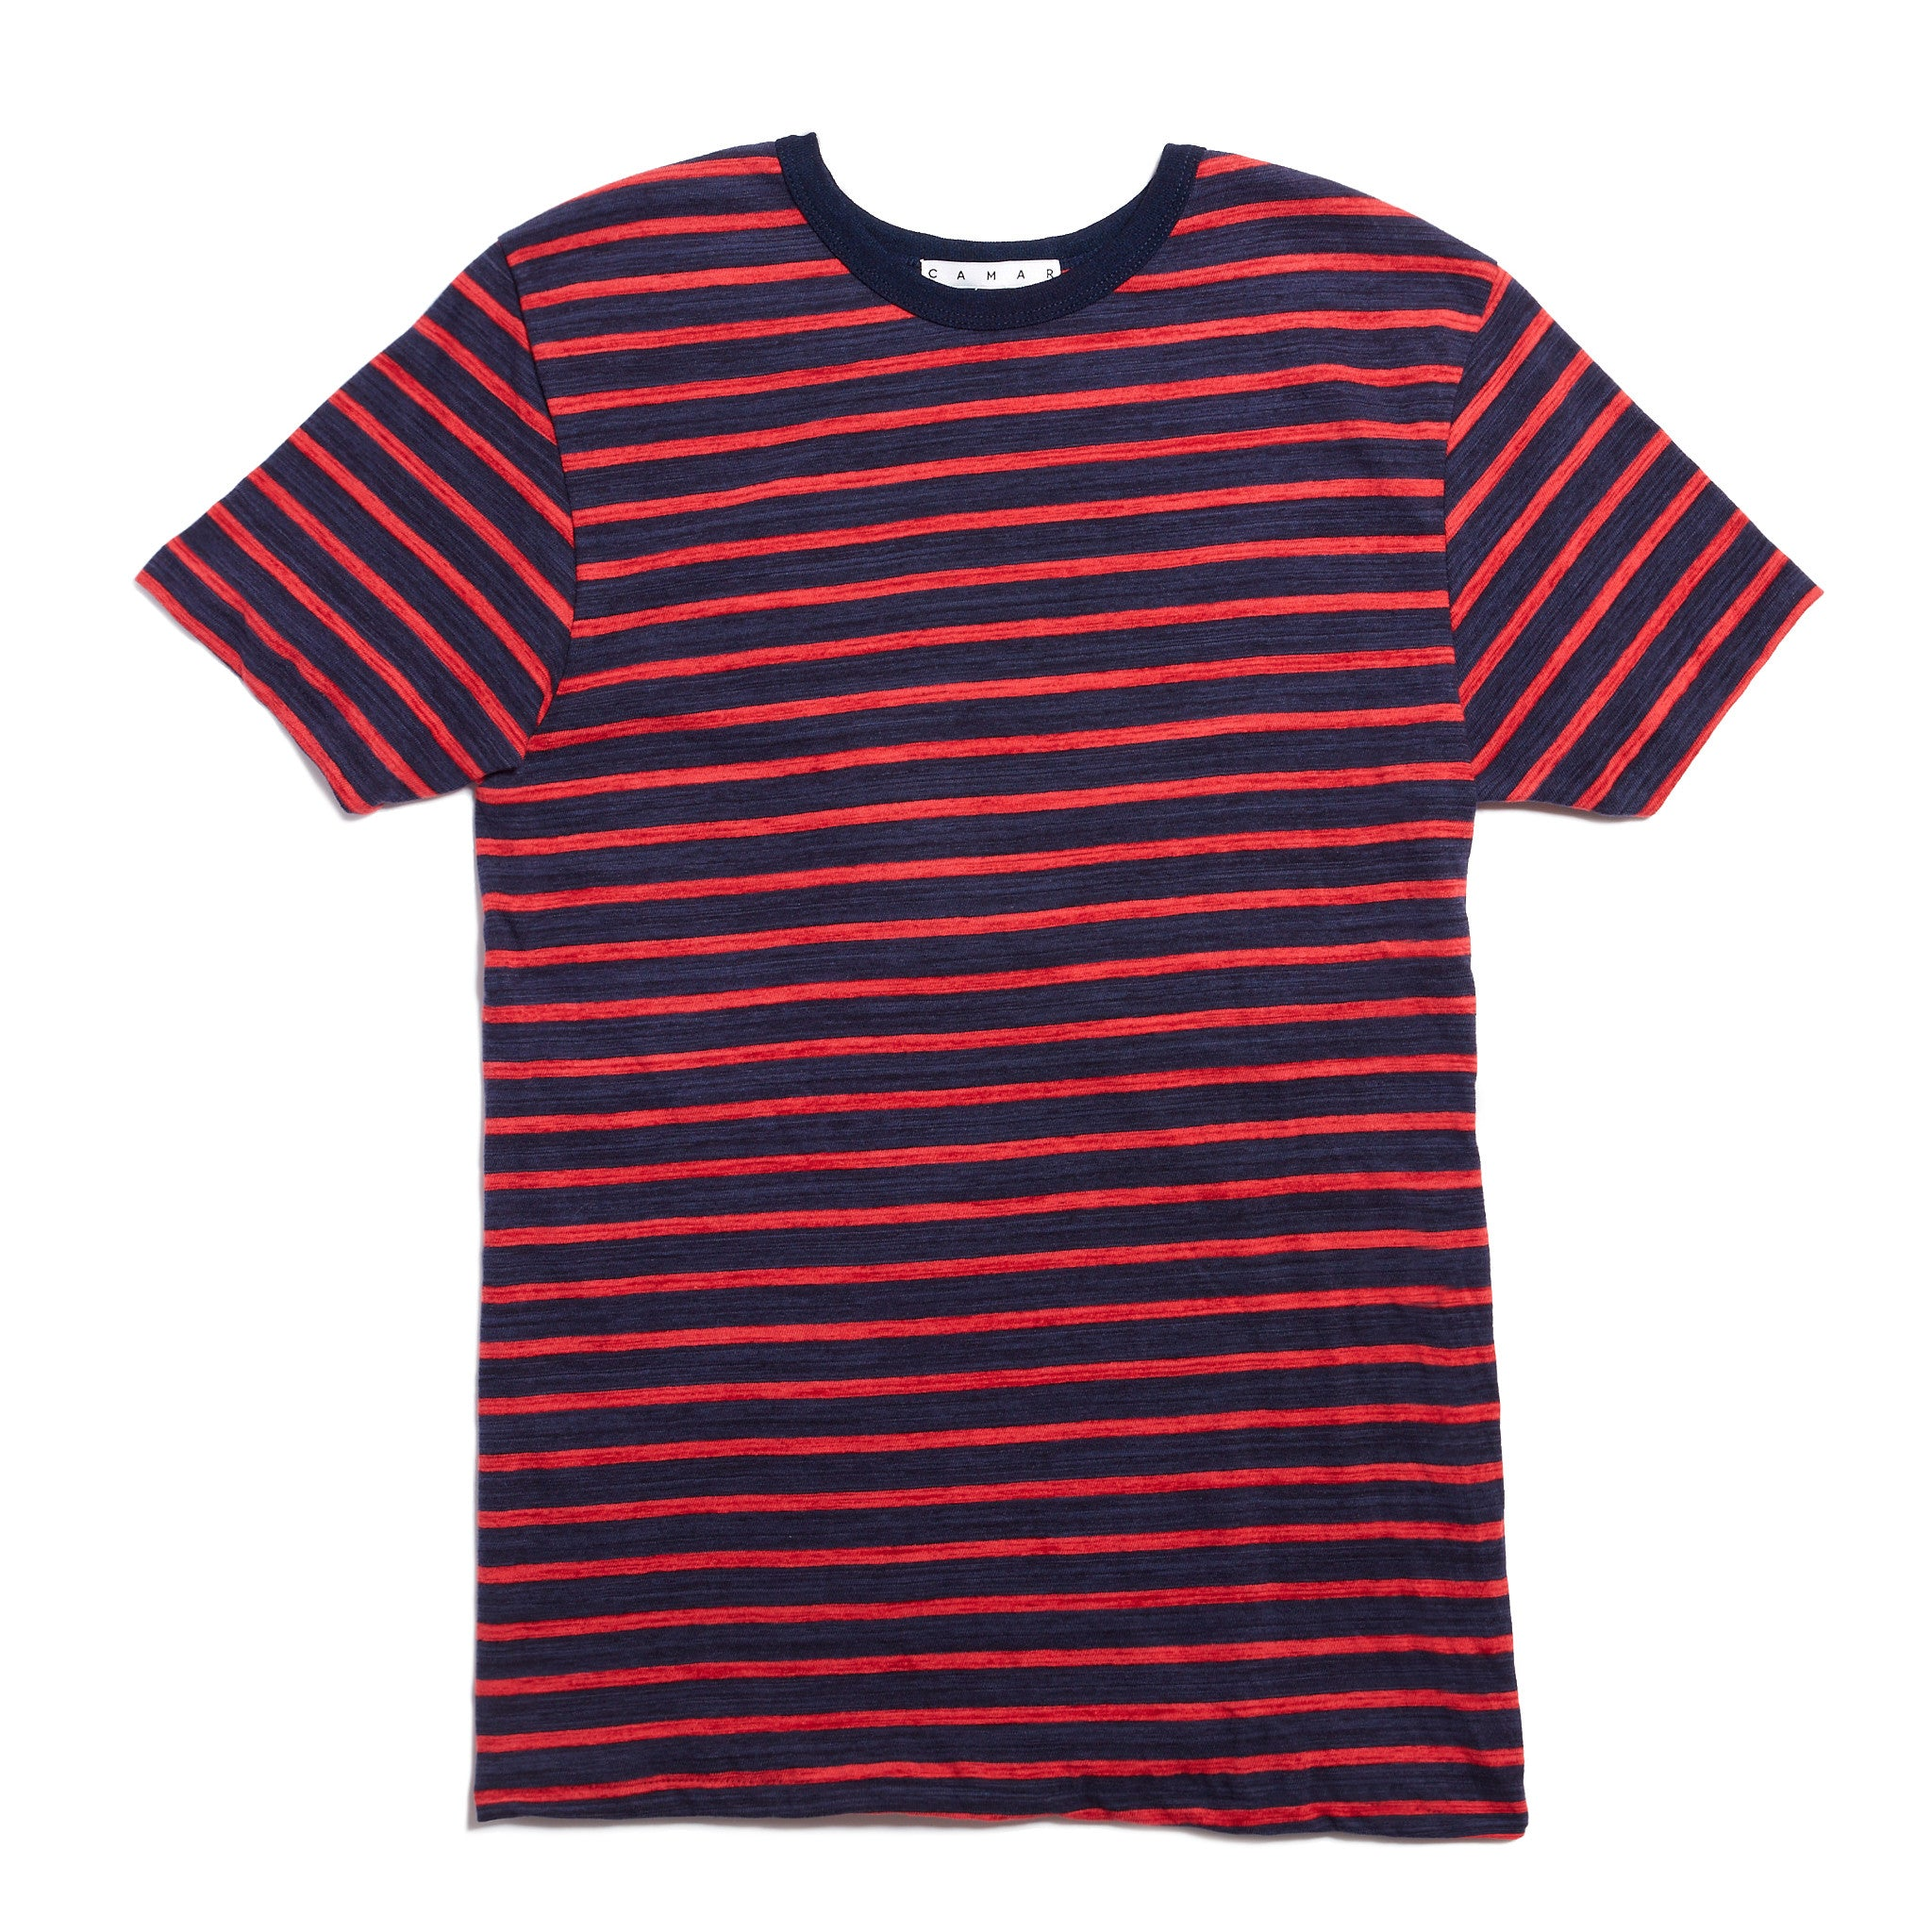 Copy of Red Indigo T-shirt